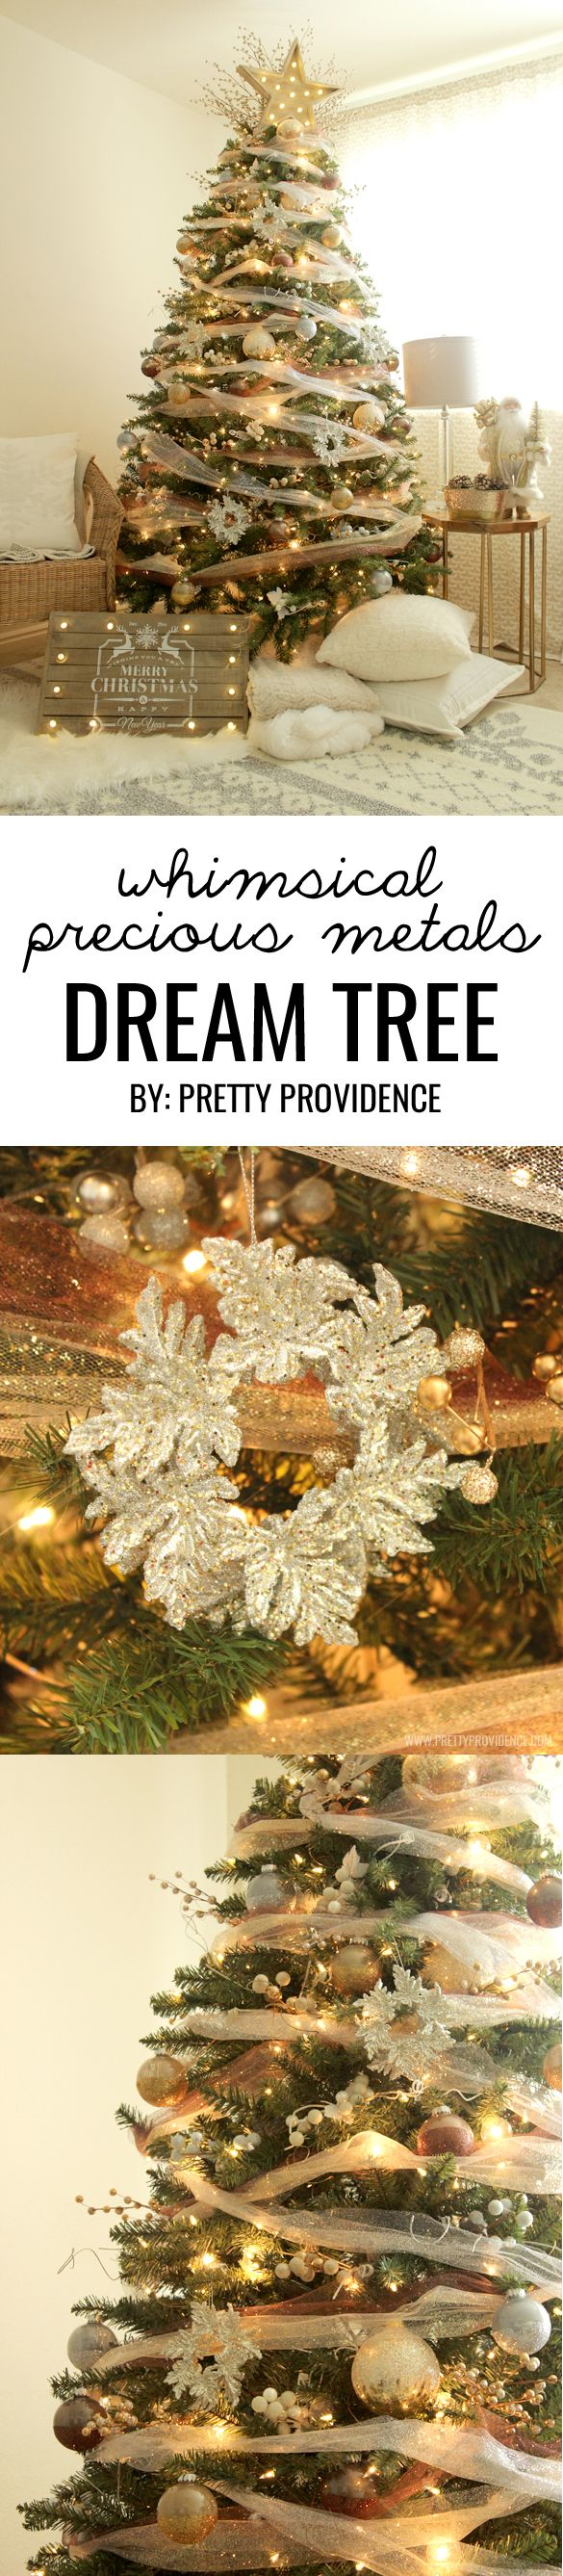 I am in love with this whimsical precious metals Christmas tree! Doesn't it just make you want to curl up with a blanket and watch lights dance for hours?